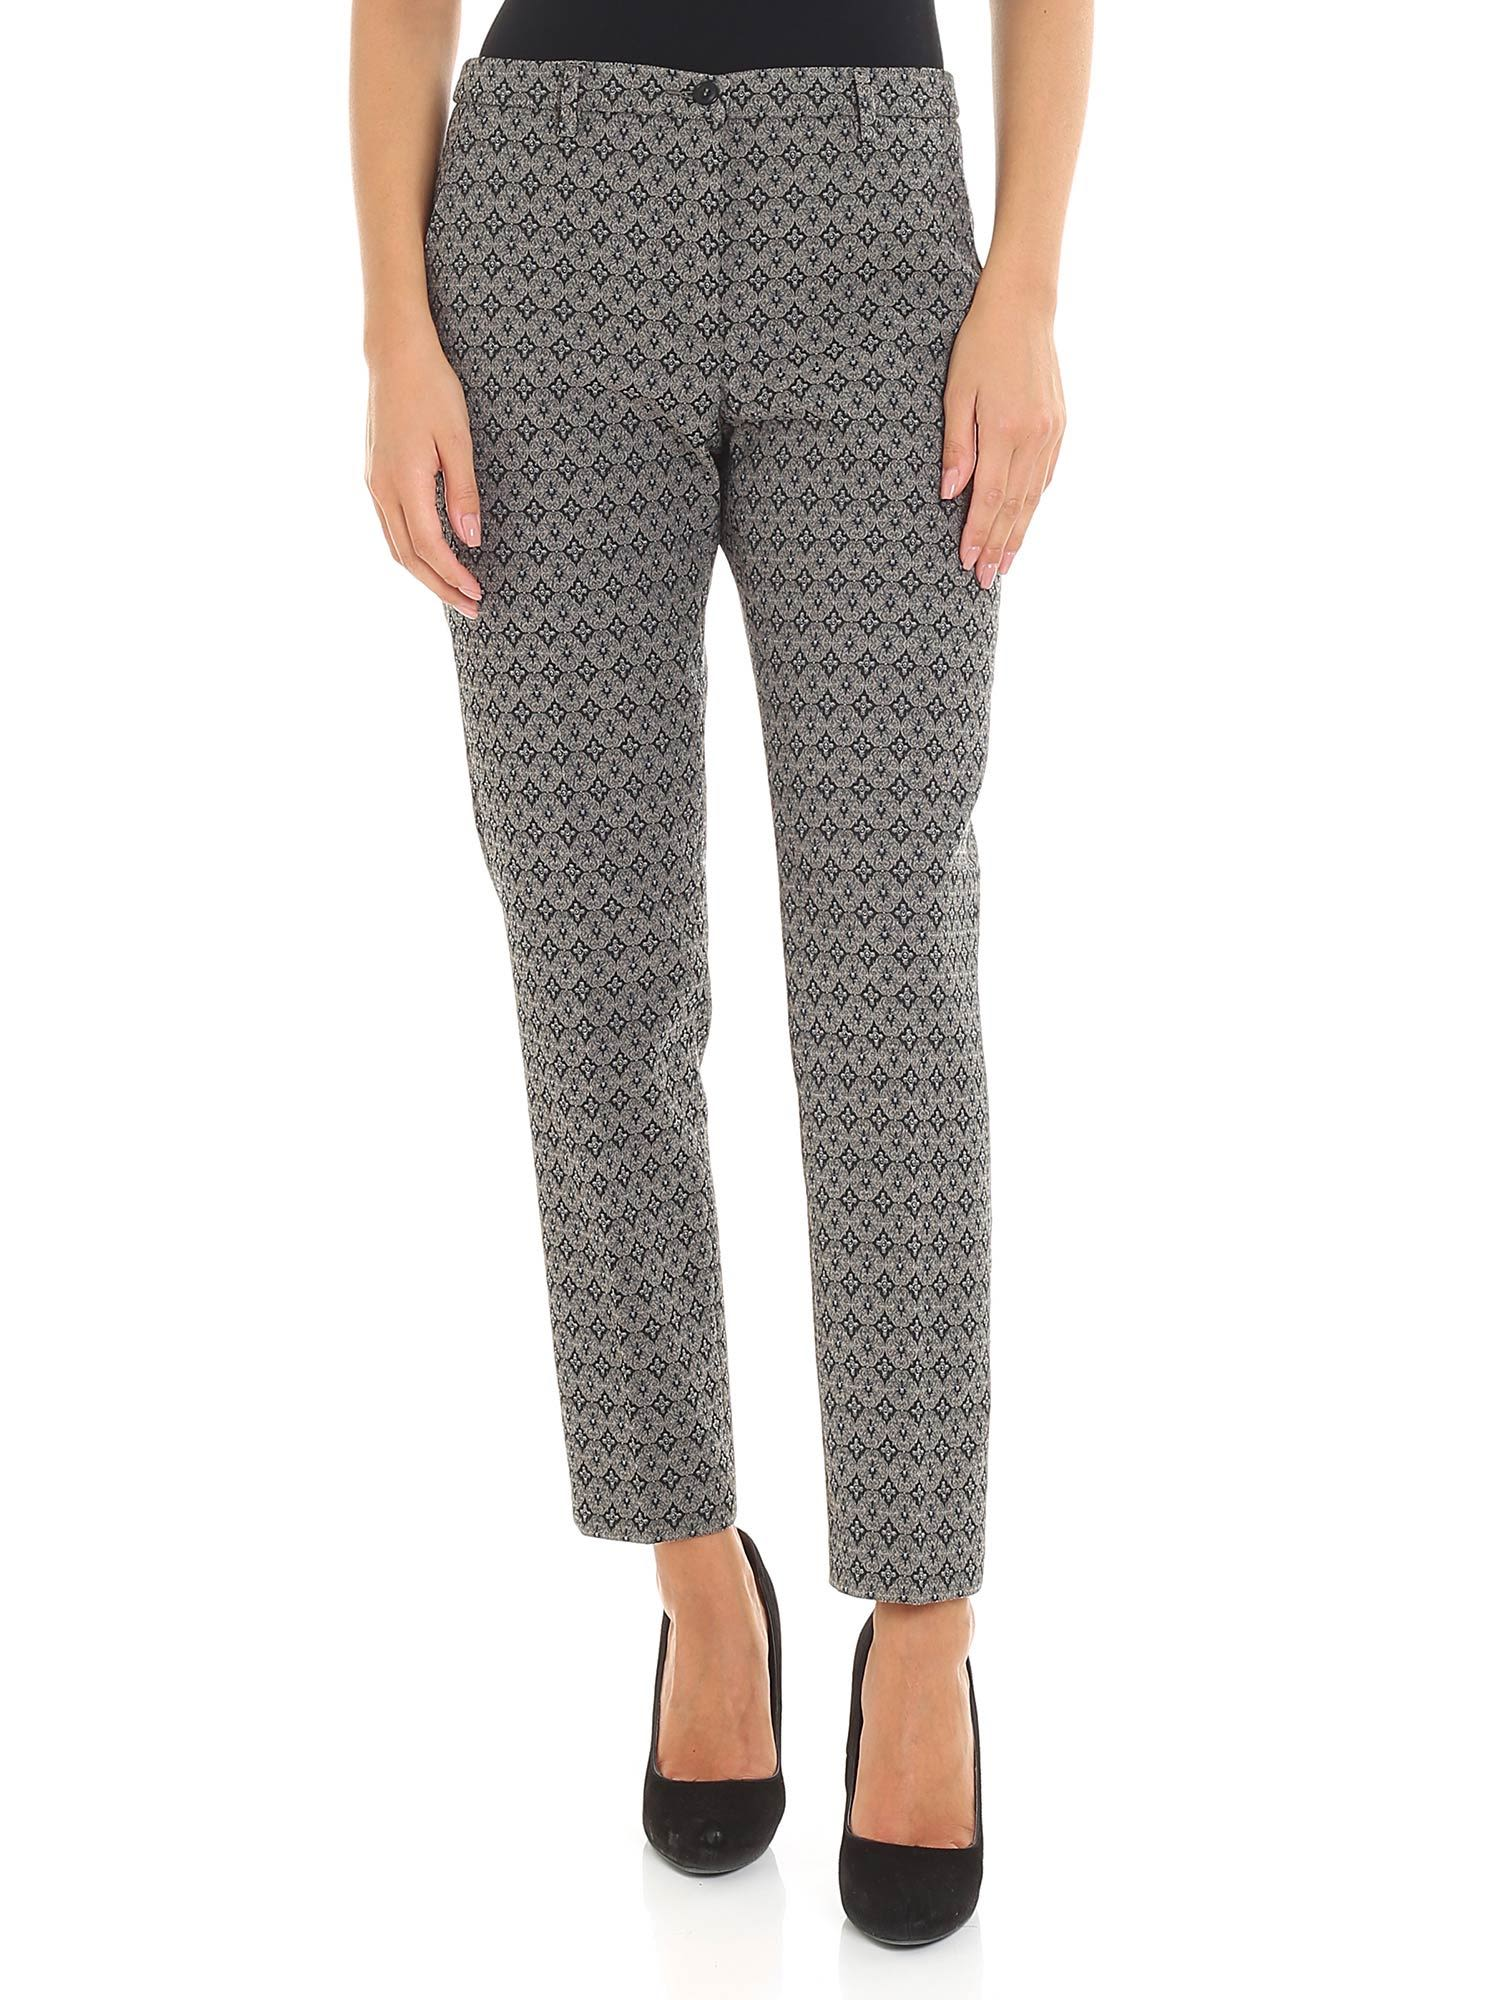 SEVENTY Tailored Trousers in Basic